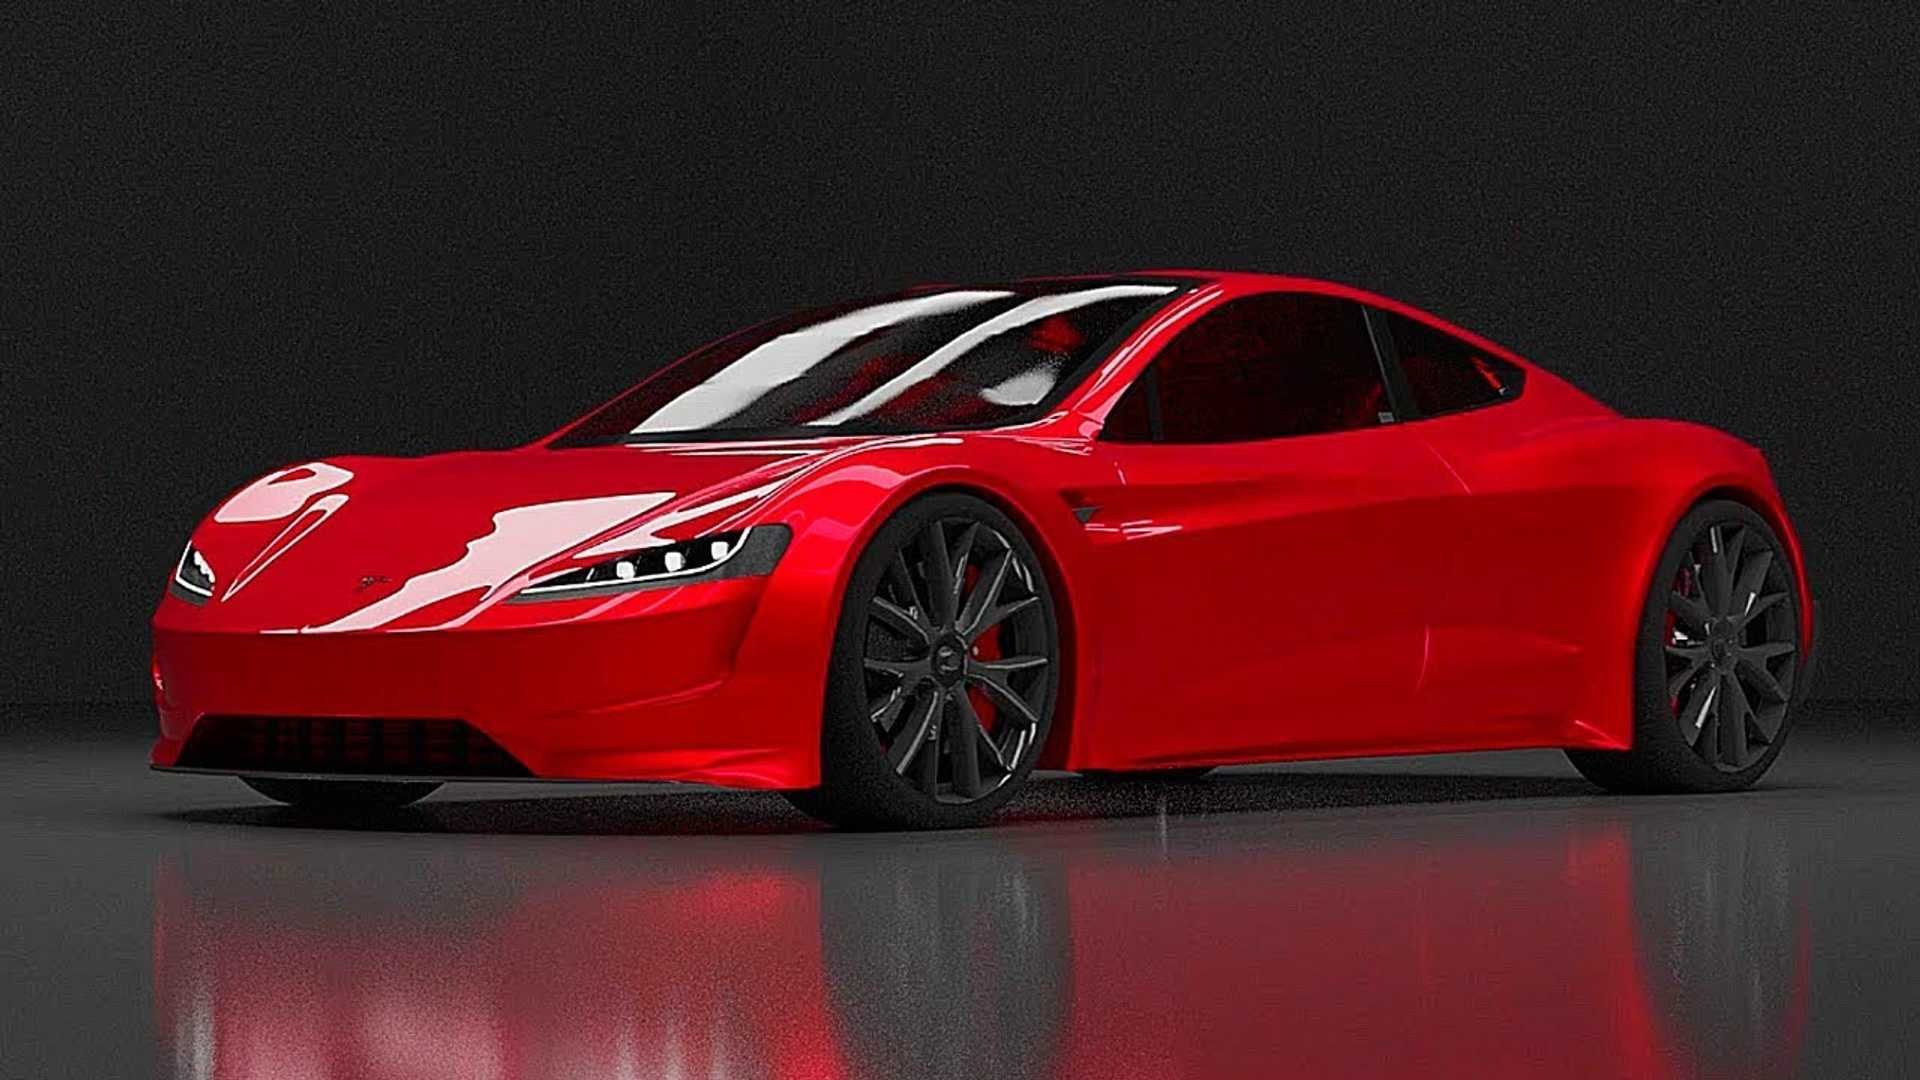 Will We See A 620-Mile Electric Car From Tesla? Maybe Porsche Too